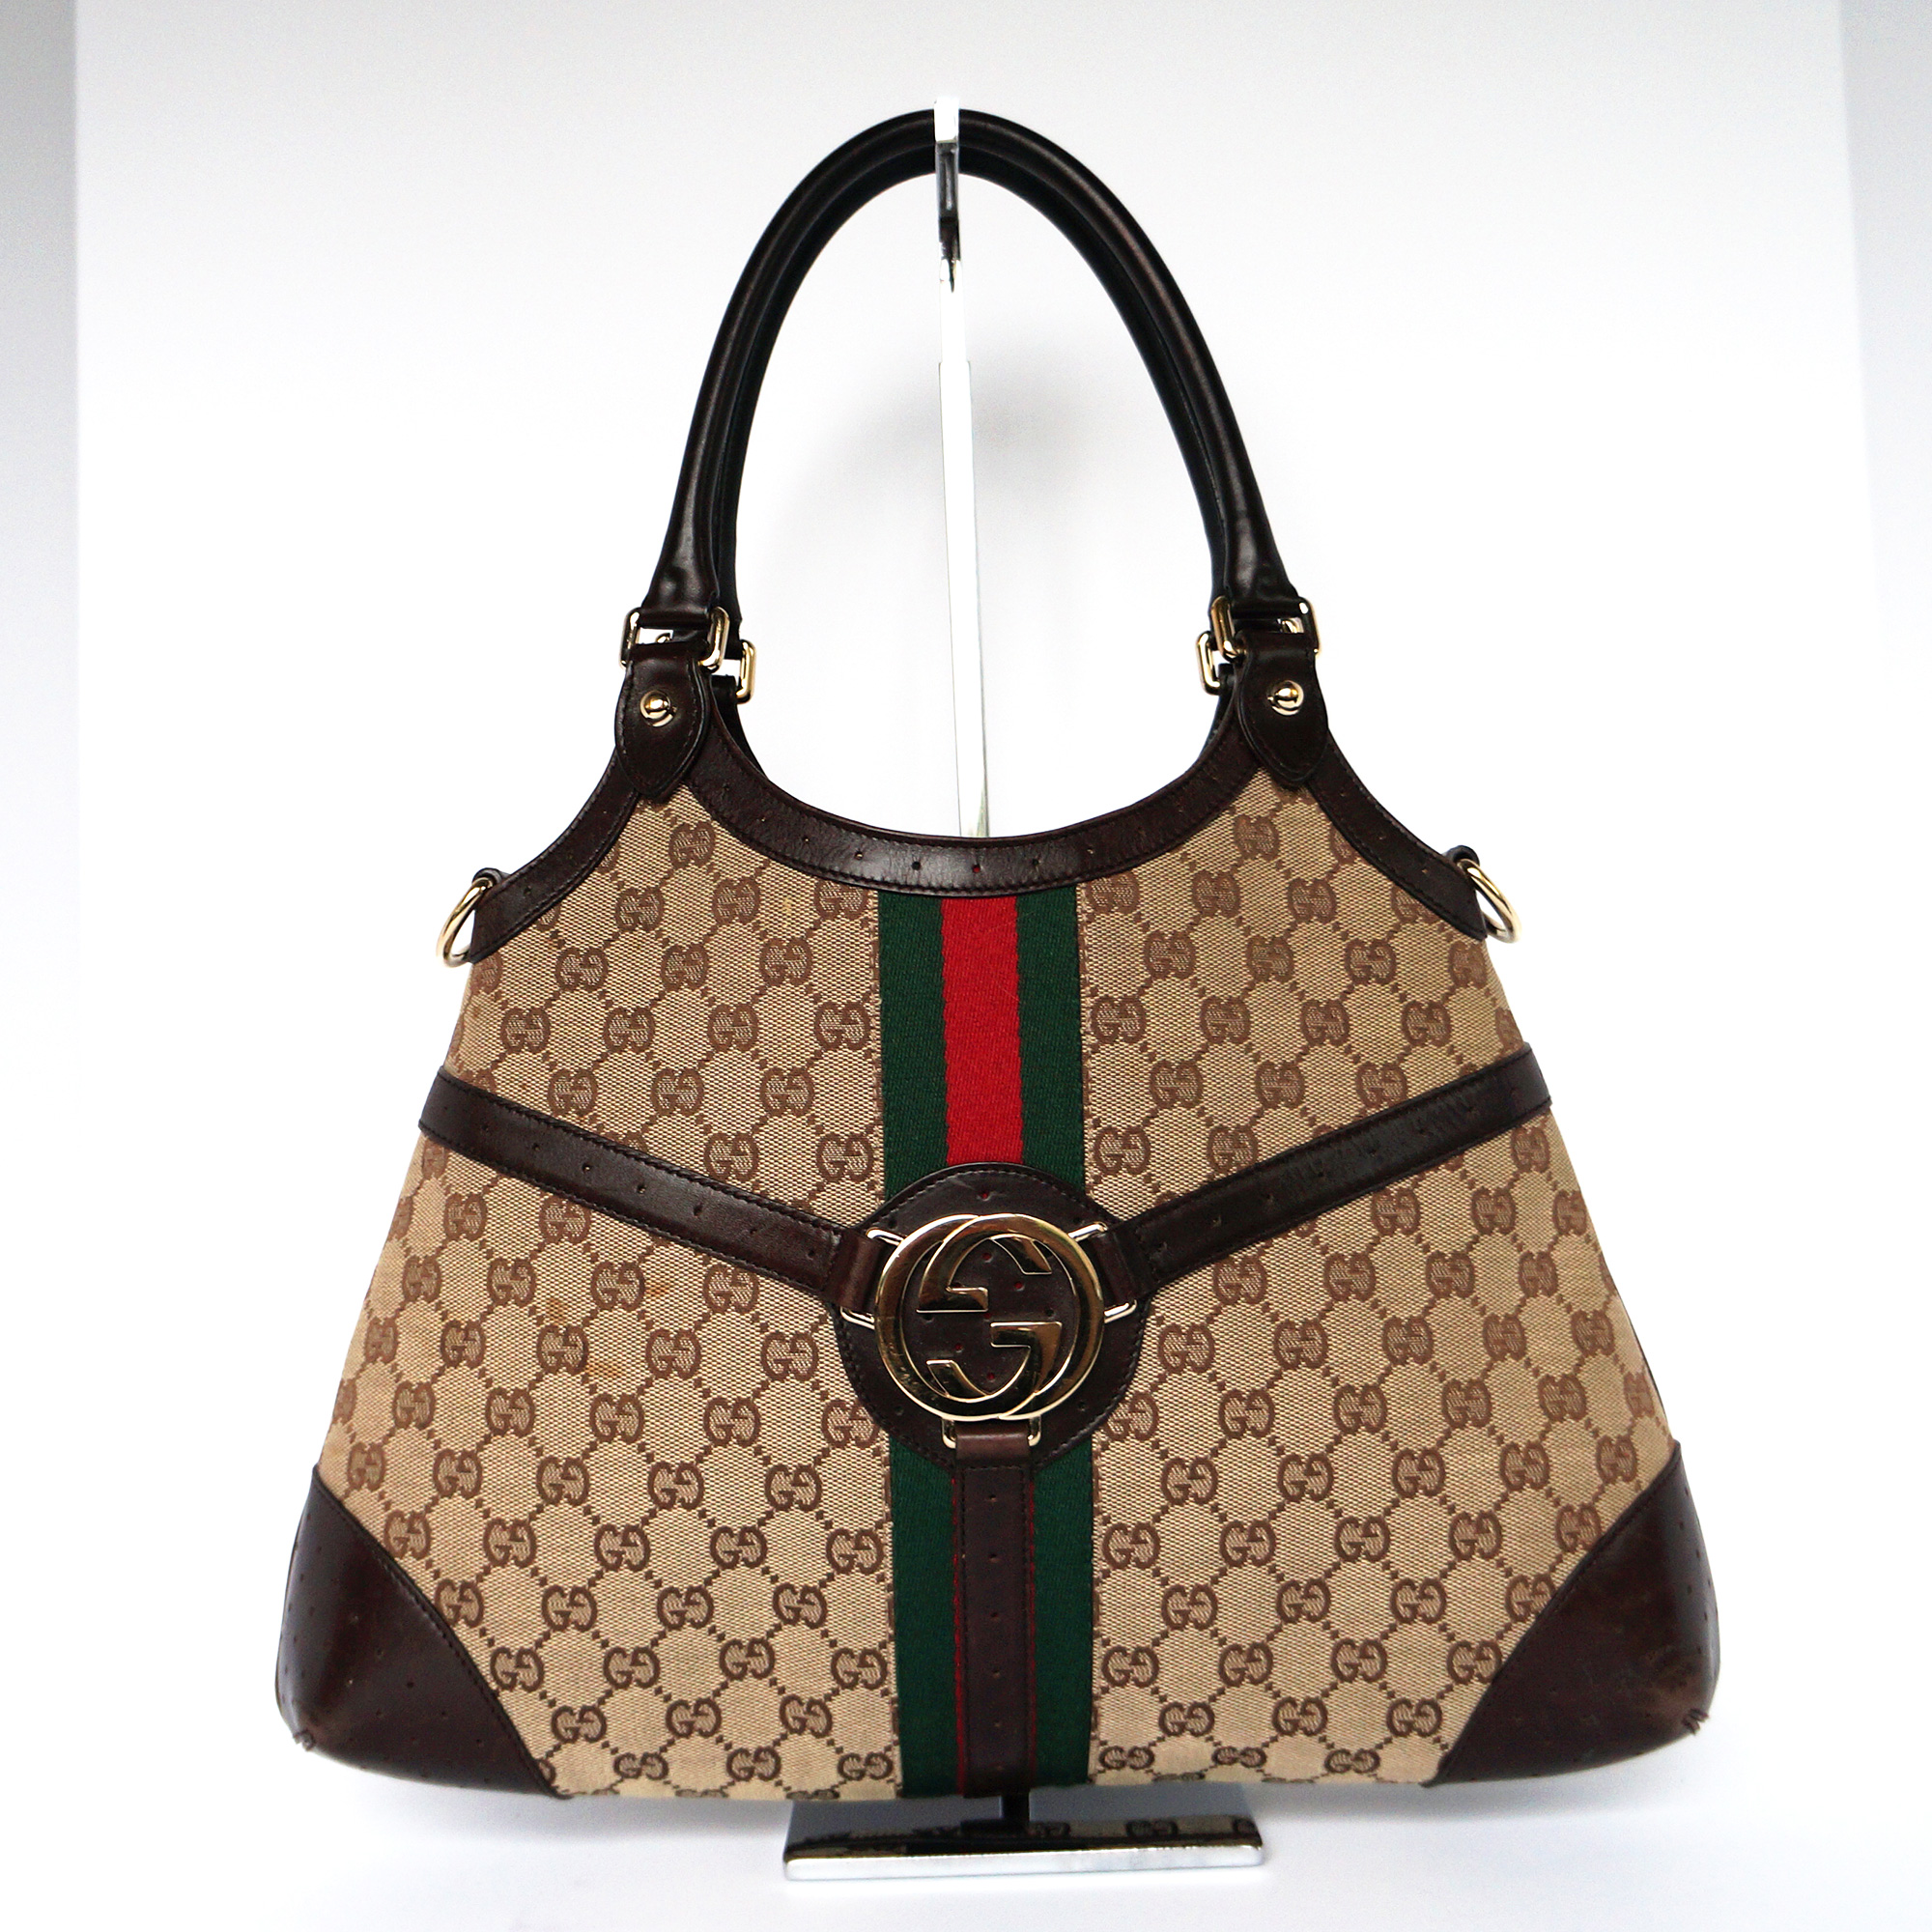 7f66308e715 Gucci Vintage Reins Bag Beige GG Monogram Canvas Brown Leather ...